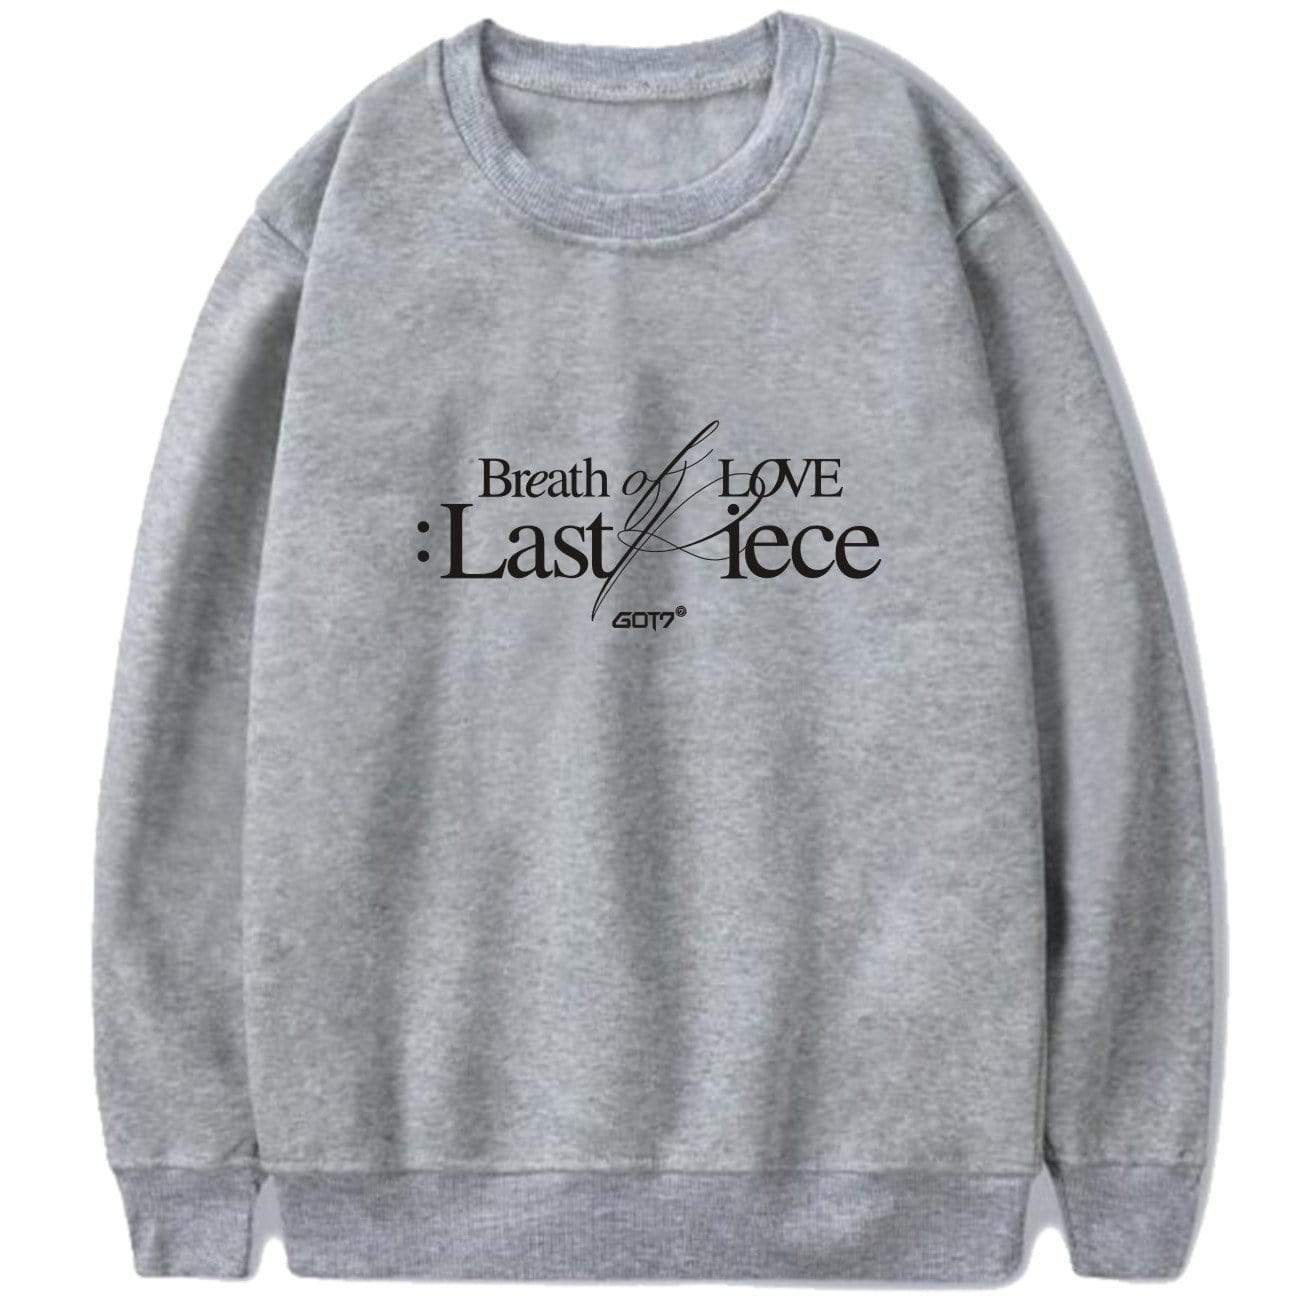 GOT7 Breath of Love Sweatshirt